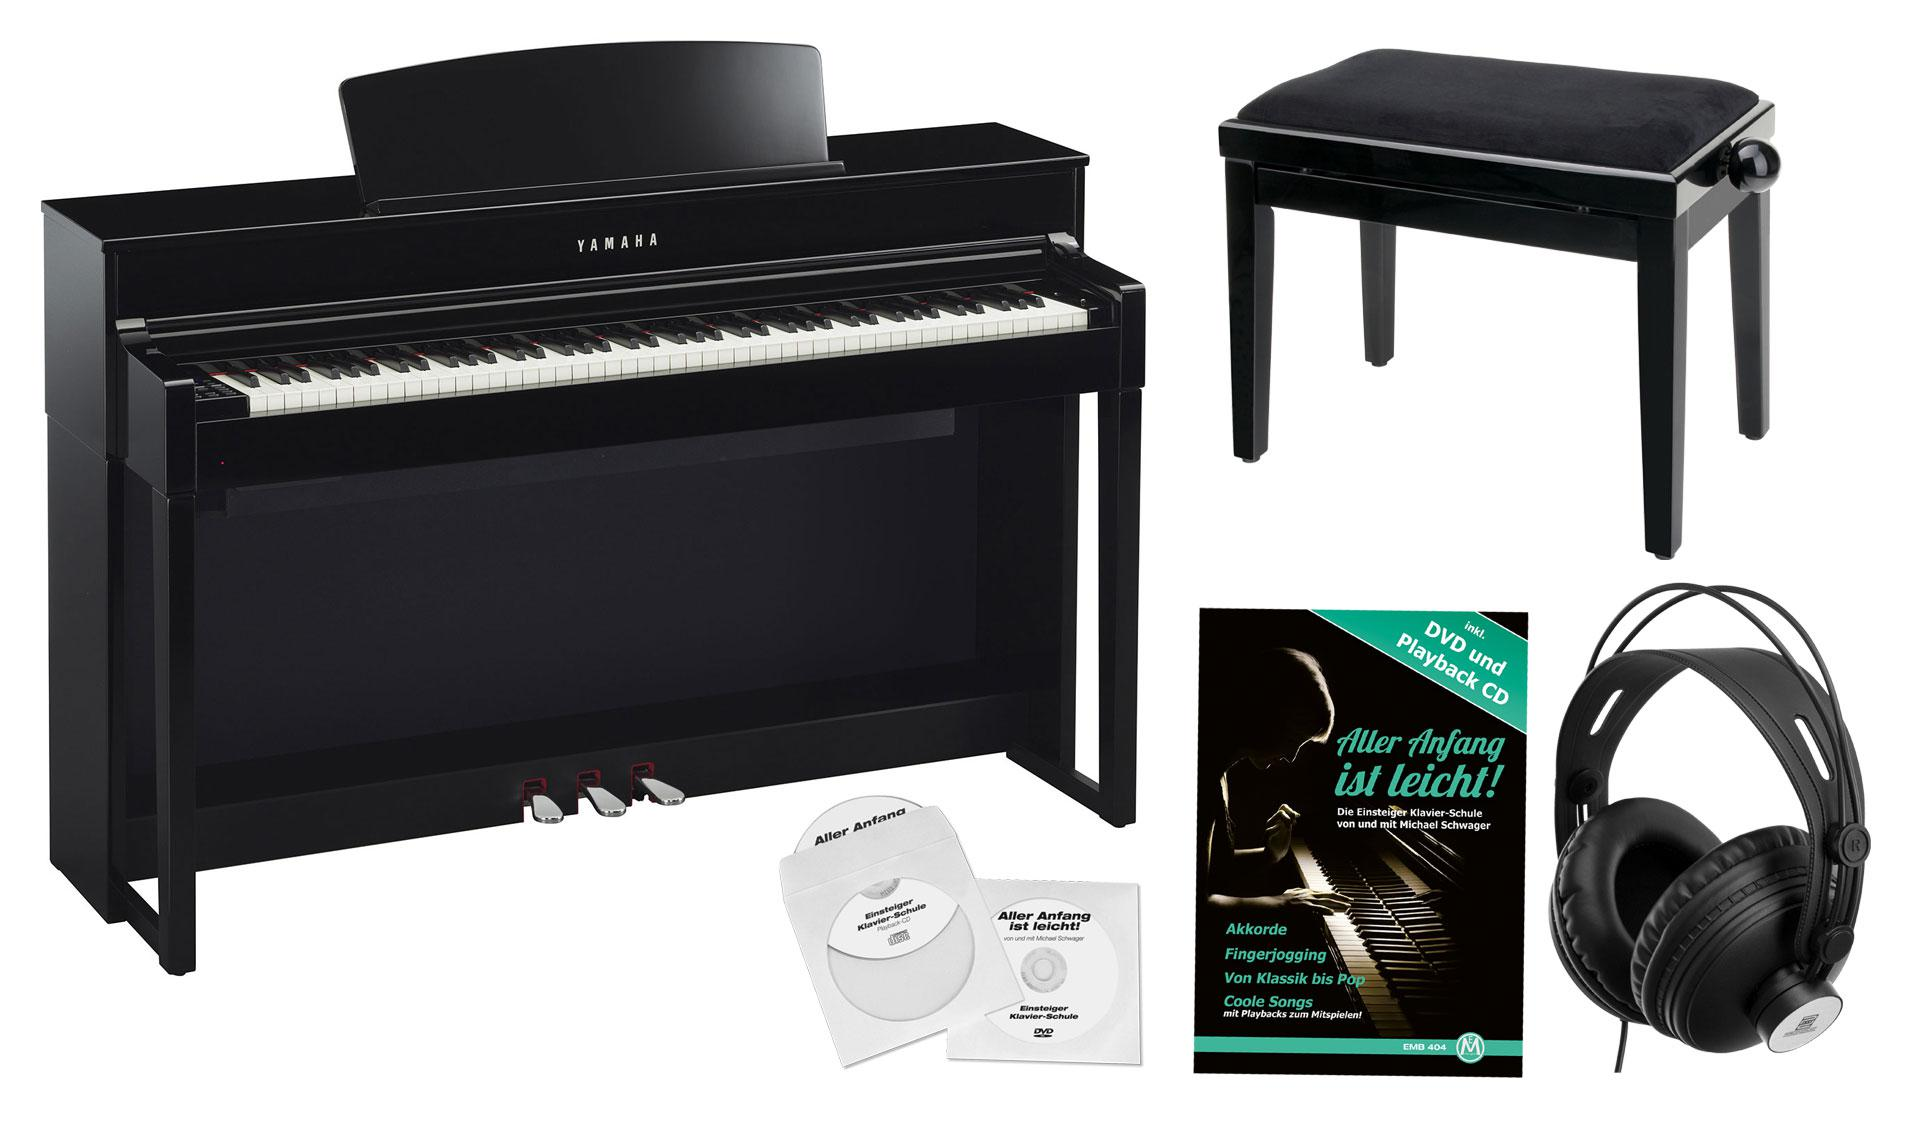 yamaha clp 575 pe digitalpiano schwarz hochglanz set. Black Bedroom Furniture Sets. Home Design Ideas